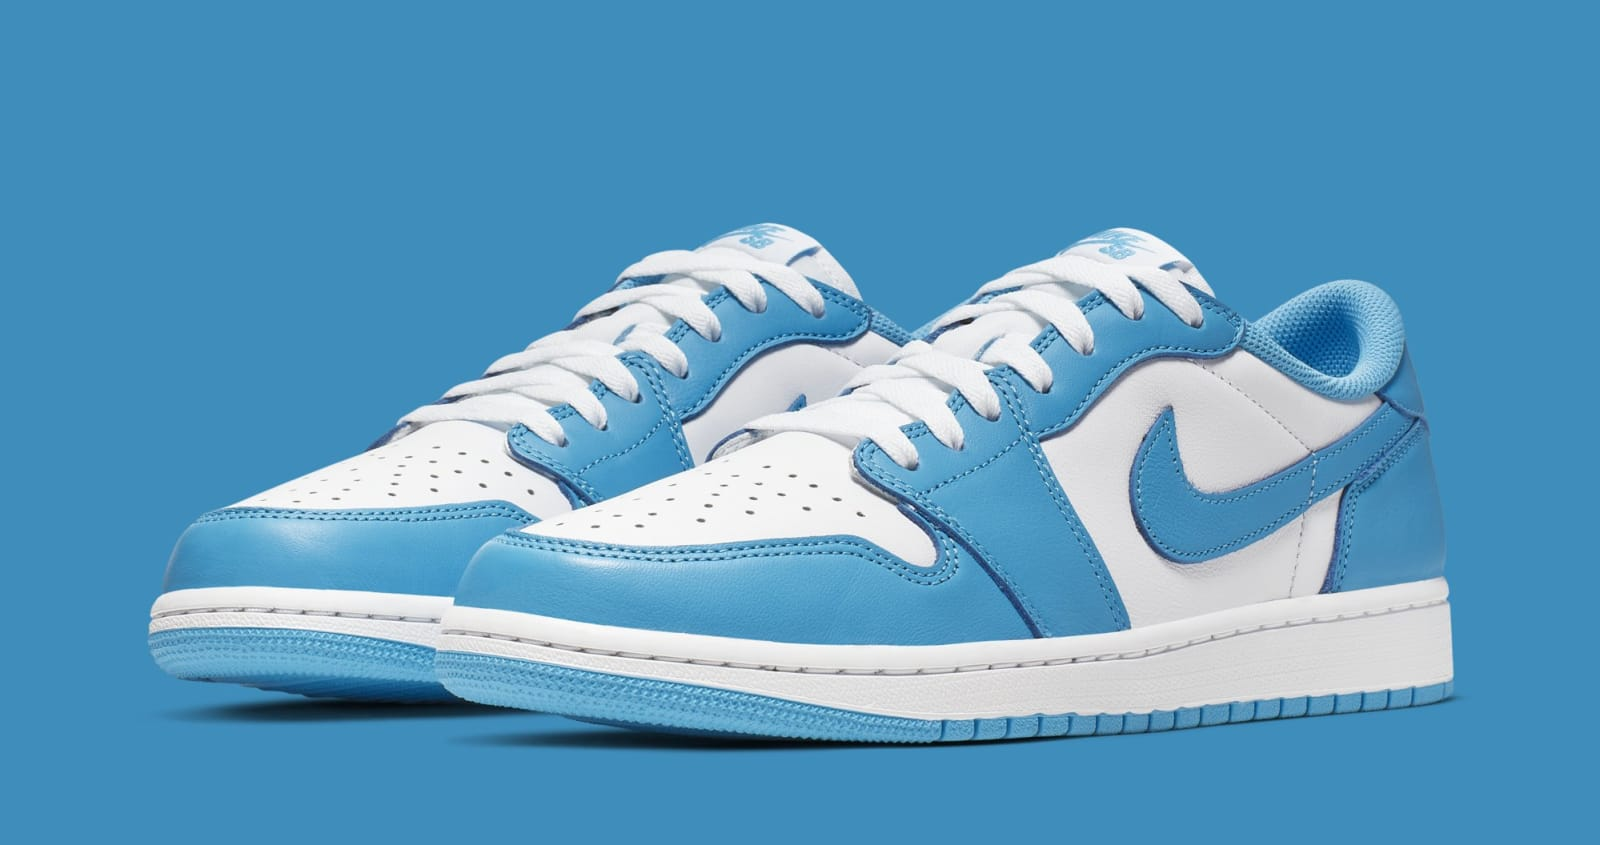 Eric Koston S Nike Sb X Air Jordan 1 Low Unc Release Date Revealed